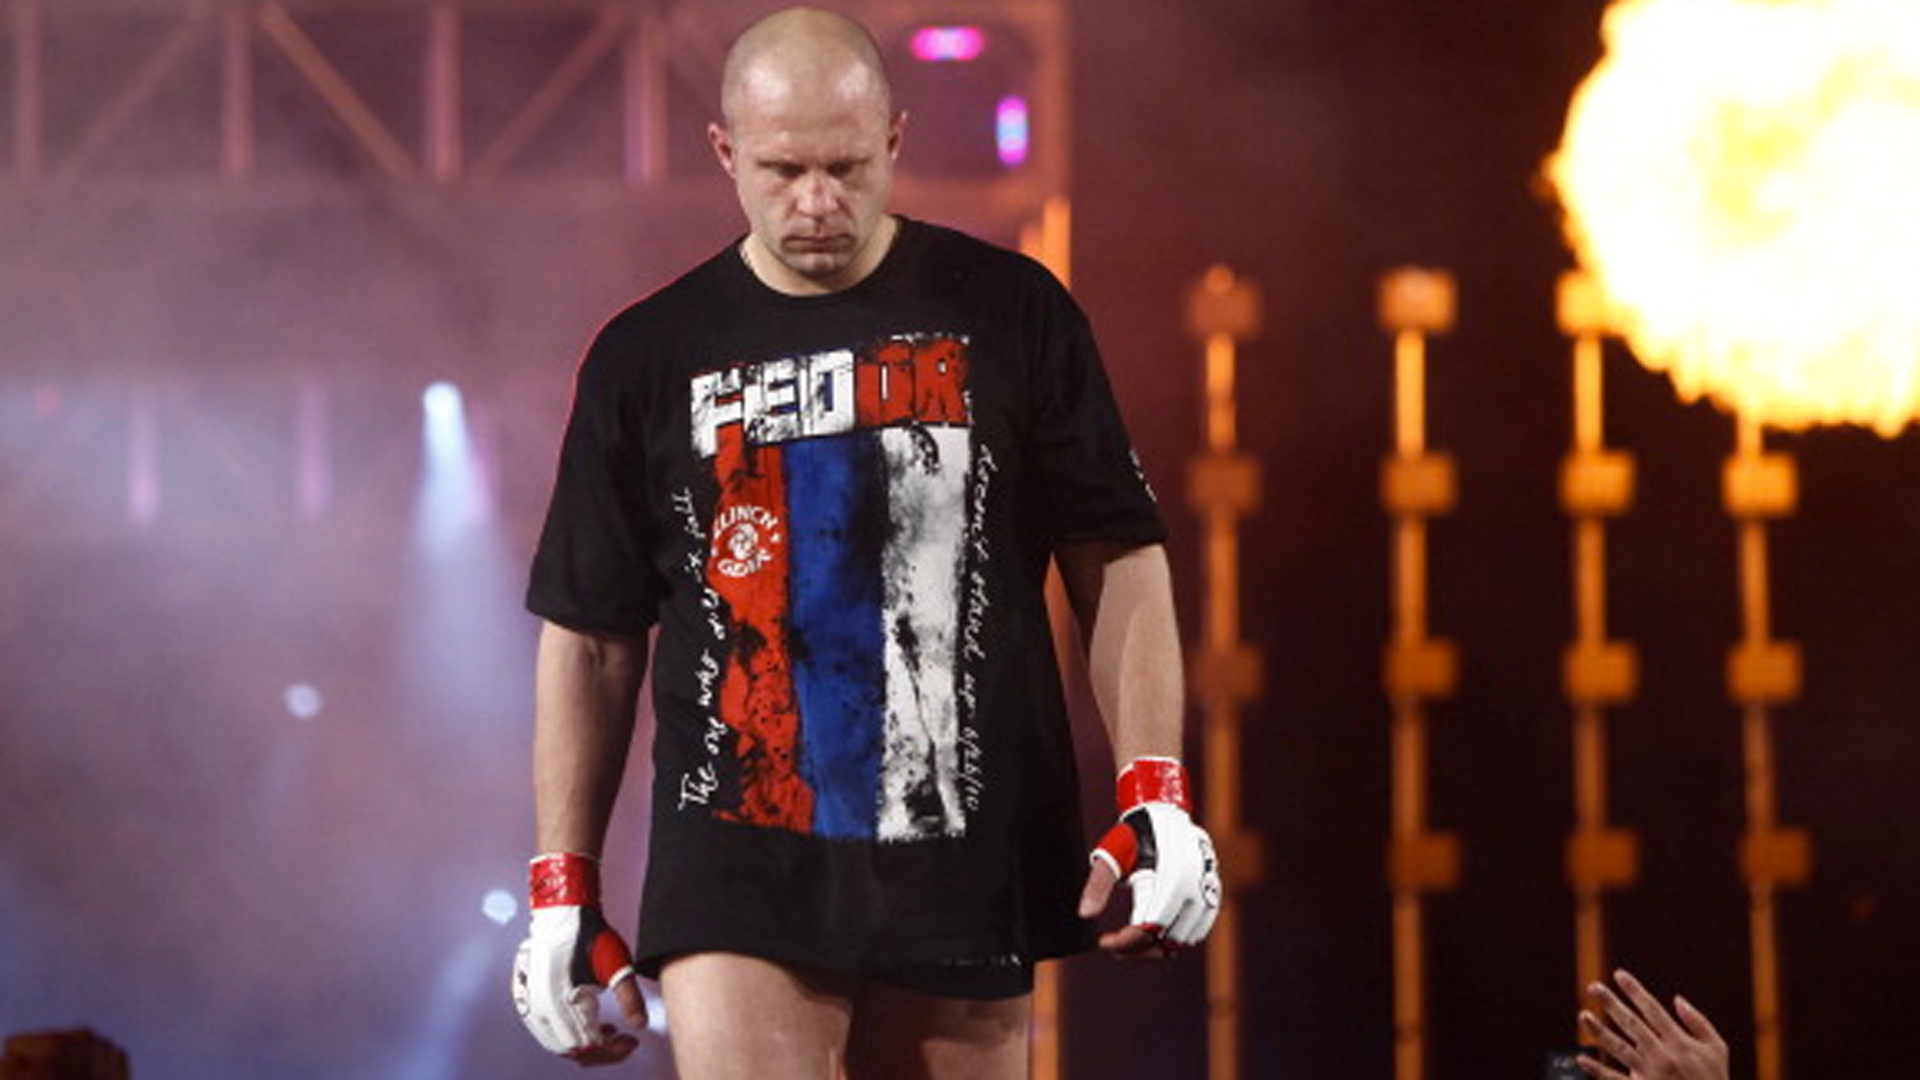 Bellator 198 Highlights: Watch Fedor Emelianenko Floor Frank Mir